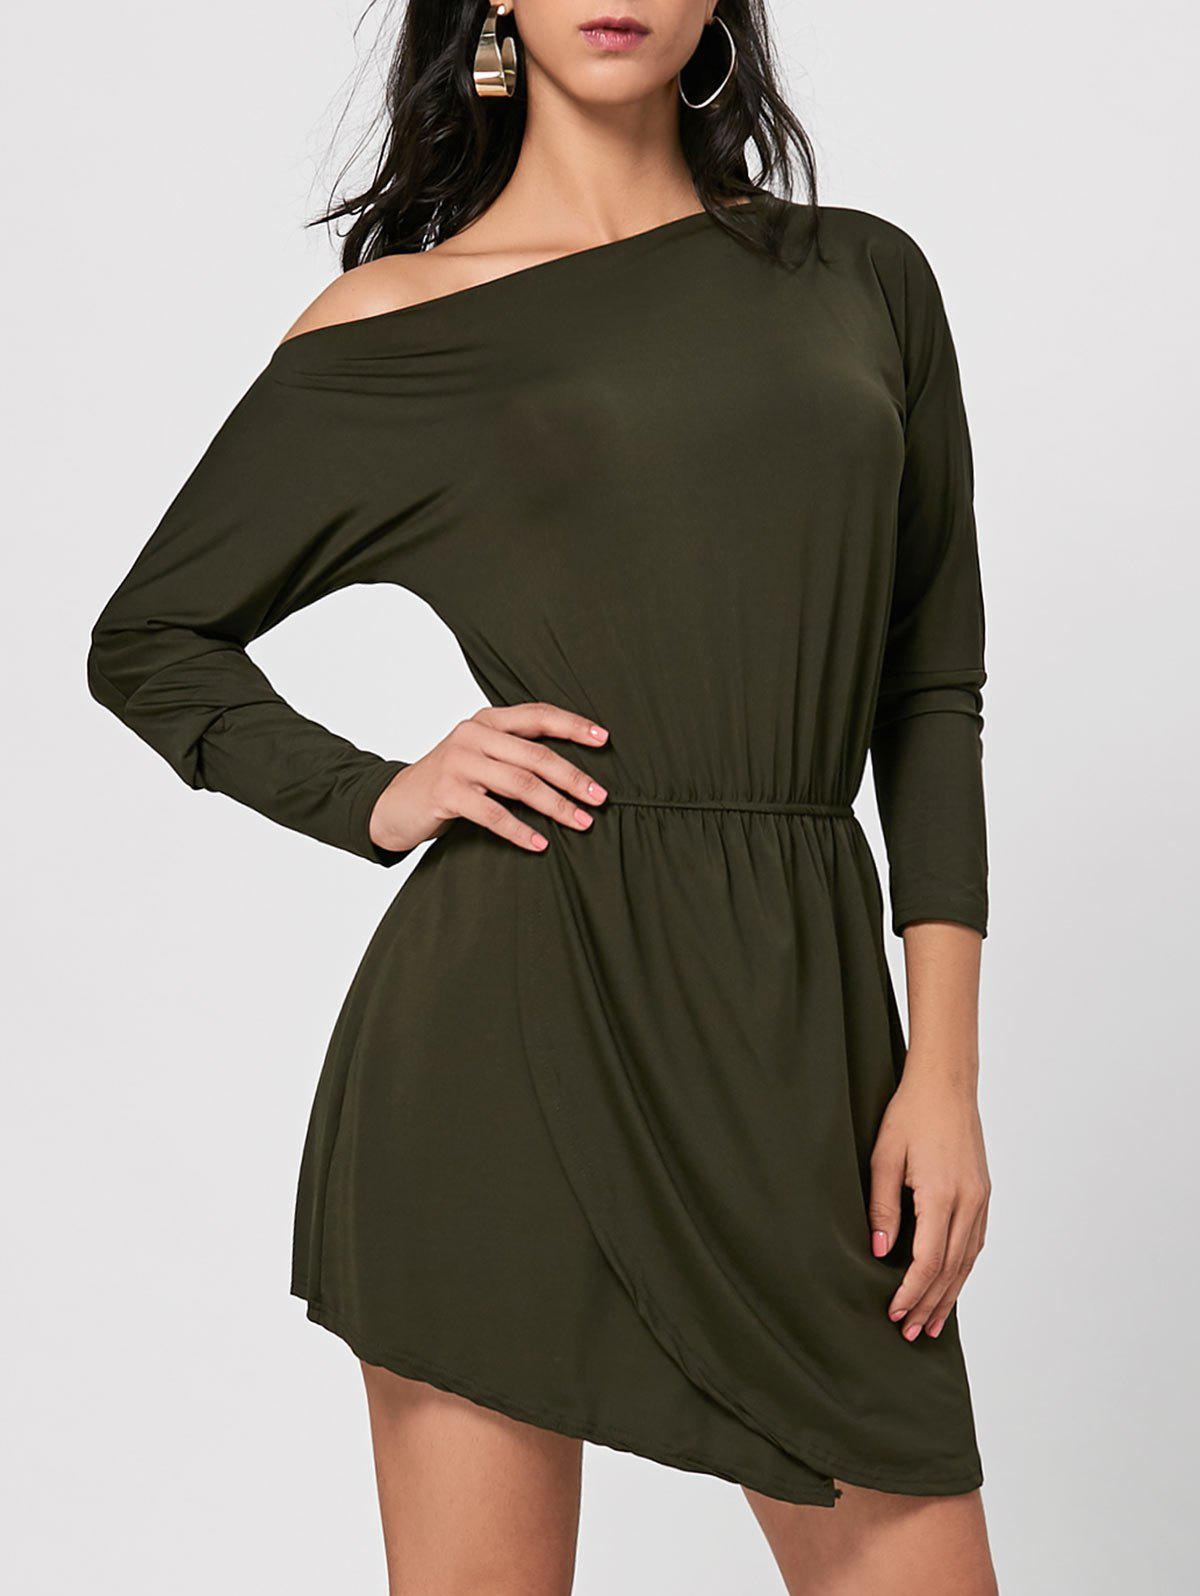 New Asymmetrical Skew Neck Mini Dress